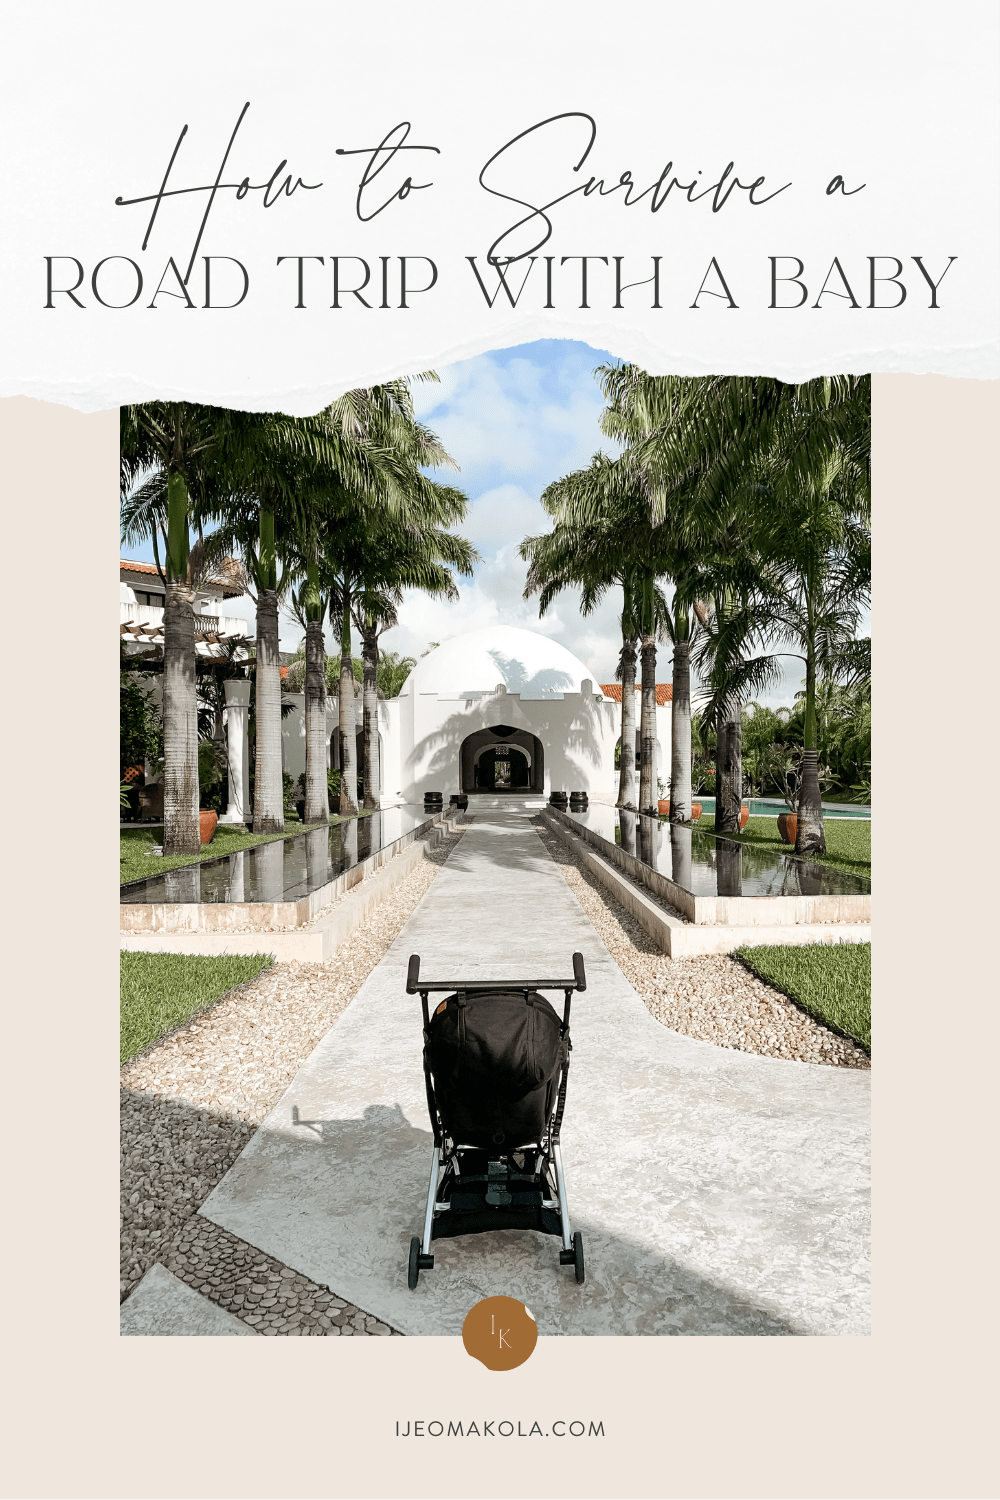 Ijeoma Kola shares her tips and packing list for how to survive a road trip with a baby